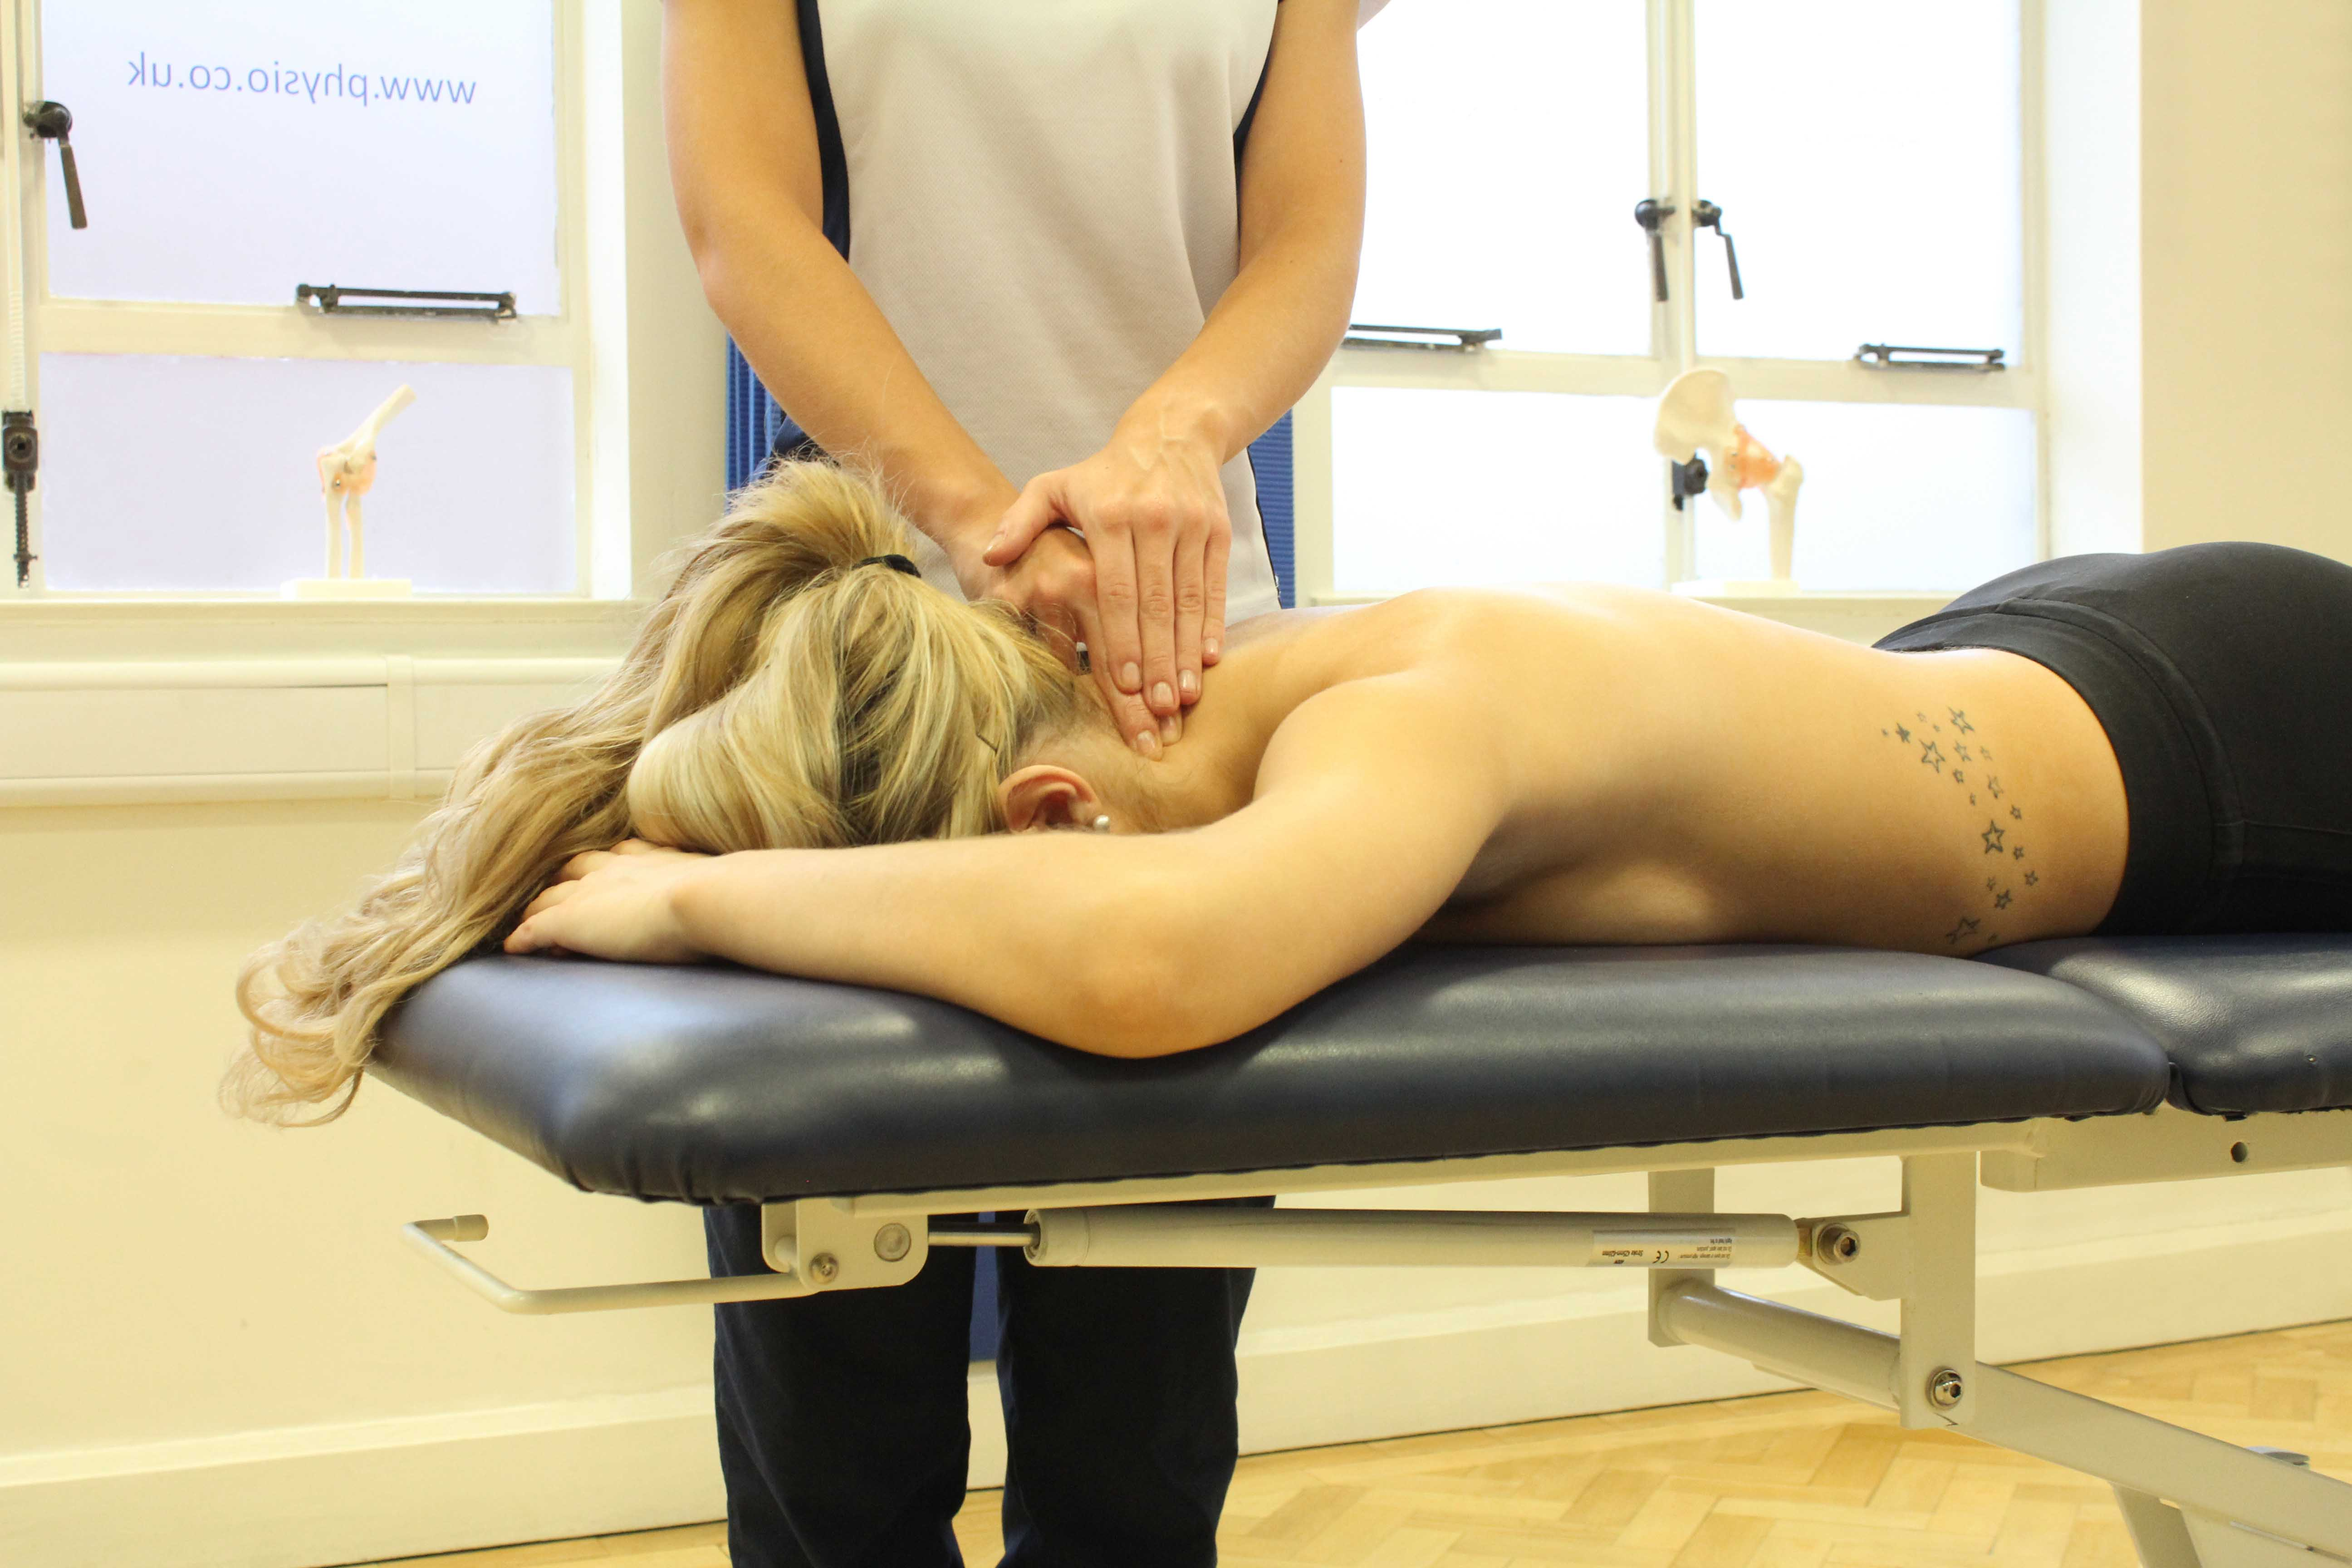 Mobilisations of the vertebrea in the cervical spine to reduce pain and stiffness